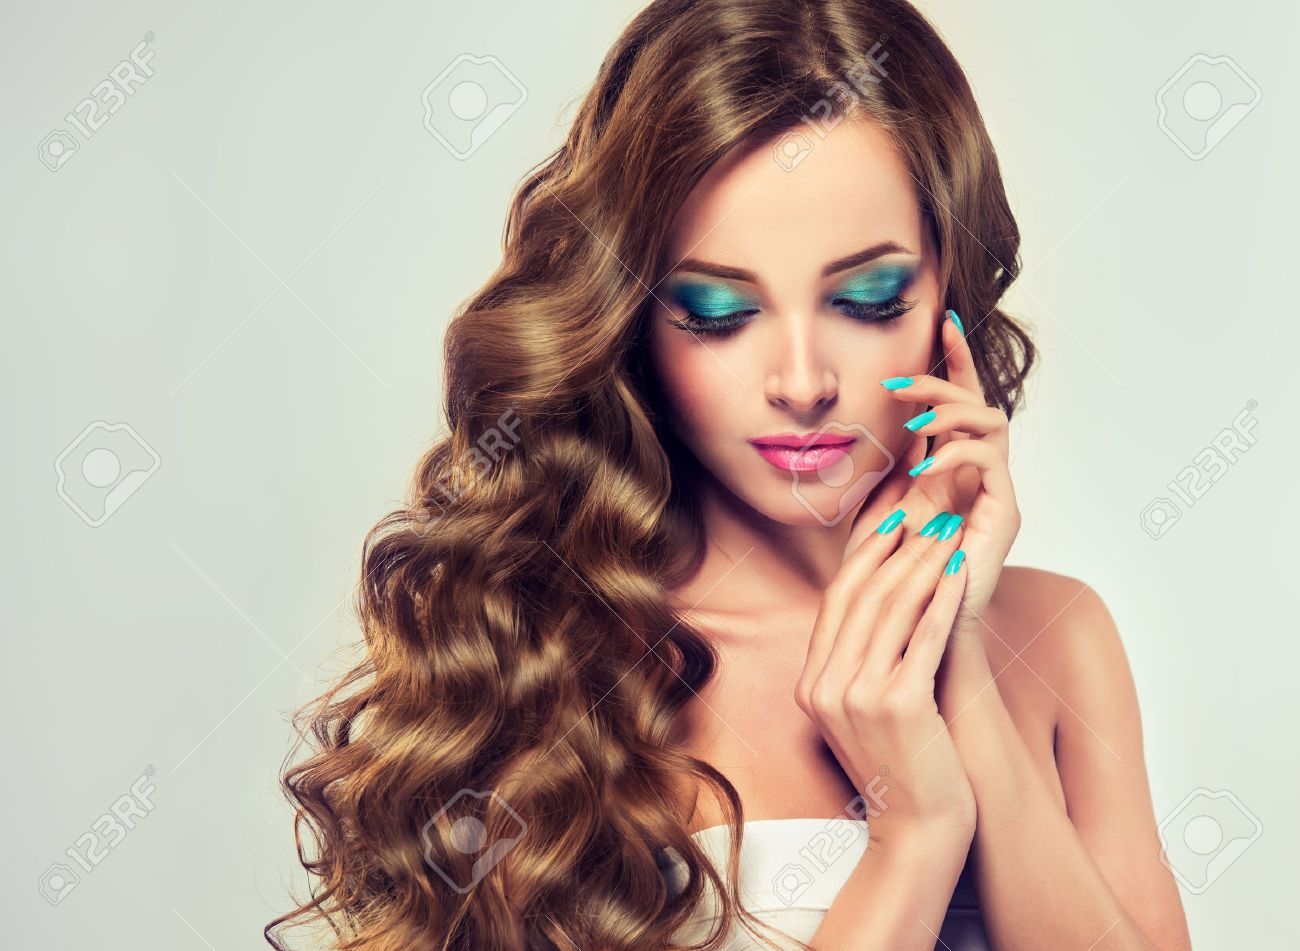 Beautiful model brunette with long and lush curled hair. Luxury fashion style, nails manicure, cosmetics and make-up. - 55393503